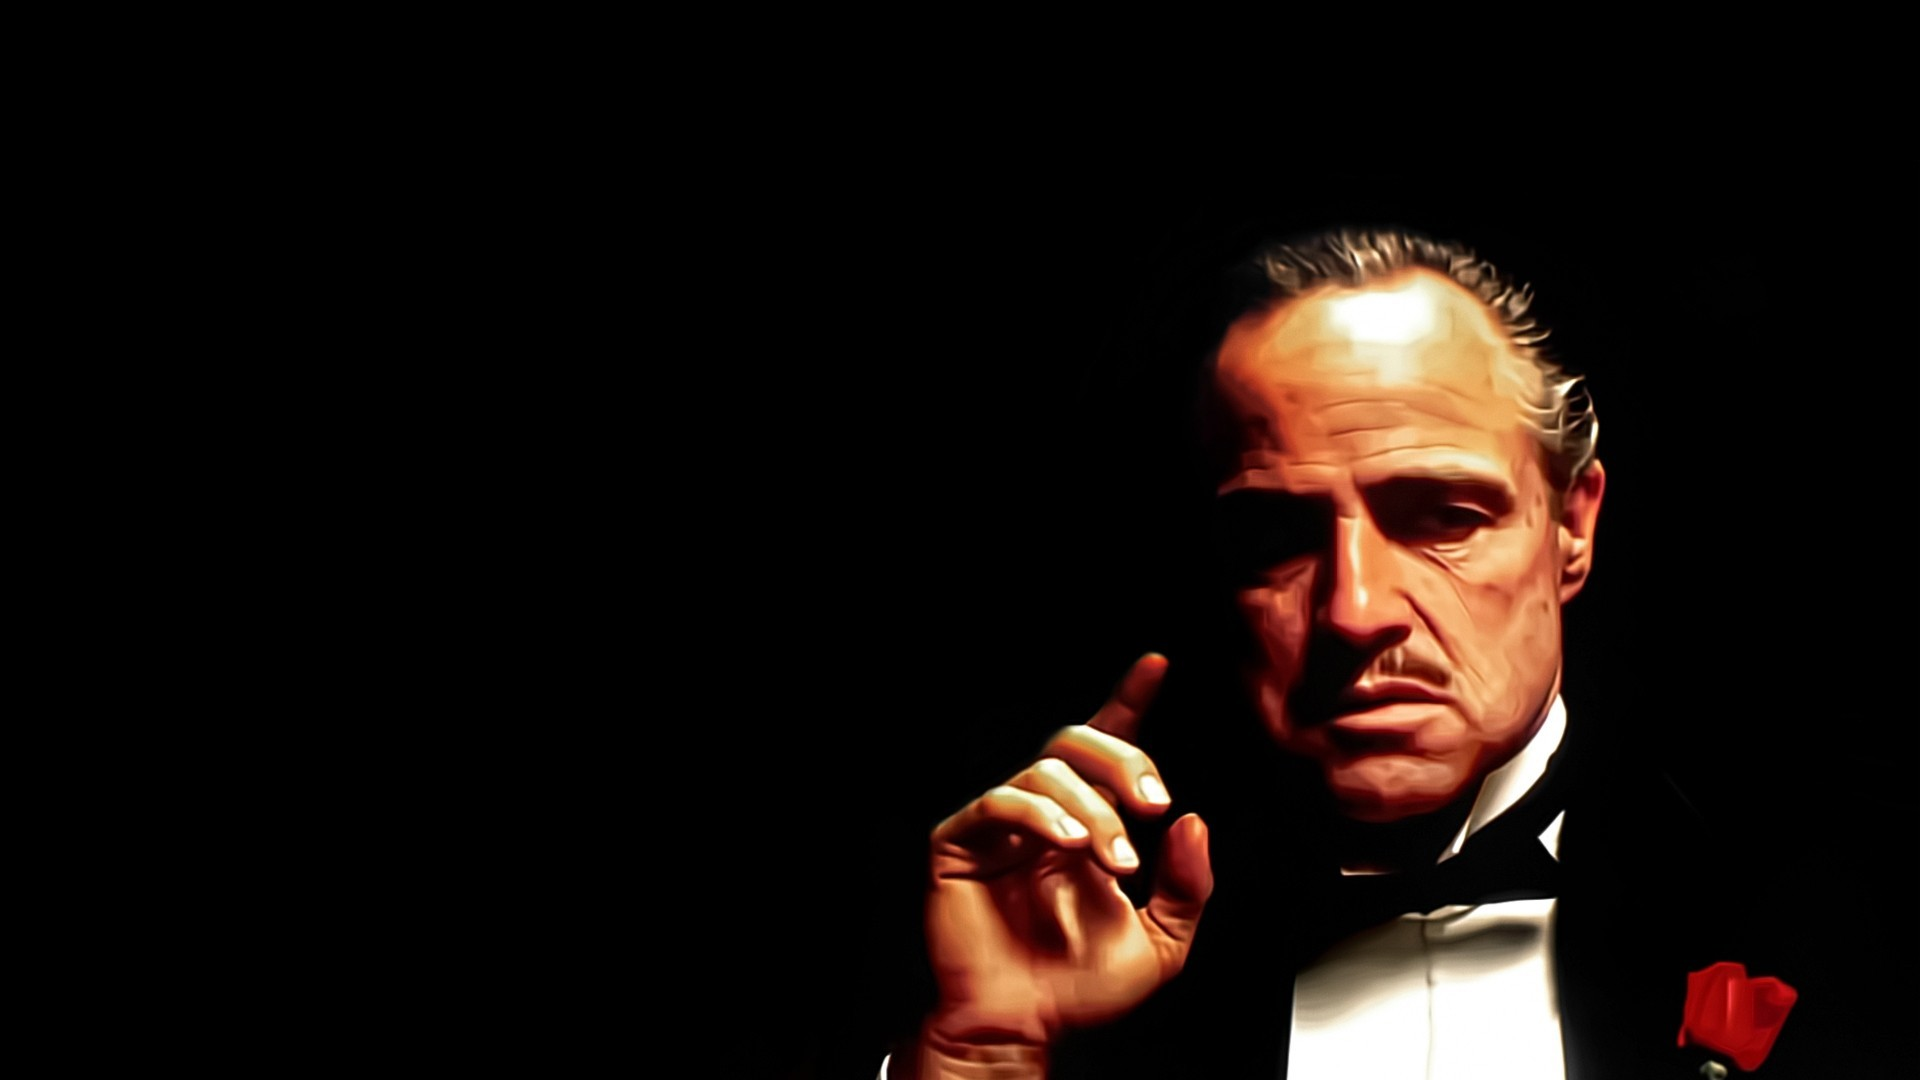 Don Vito Corleone | Godfather | pictures and wallpaper for desktop